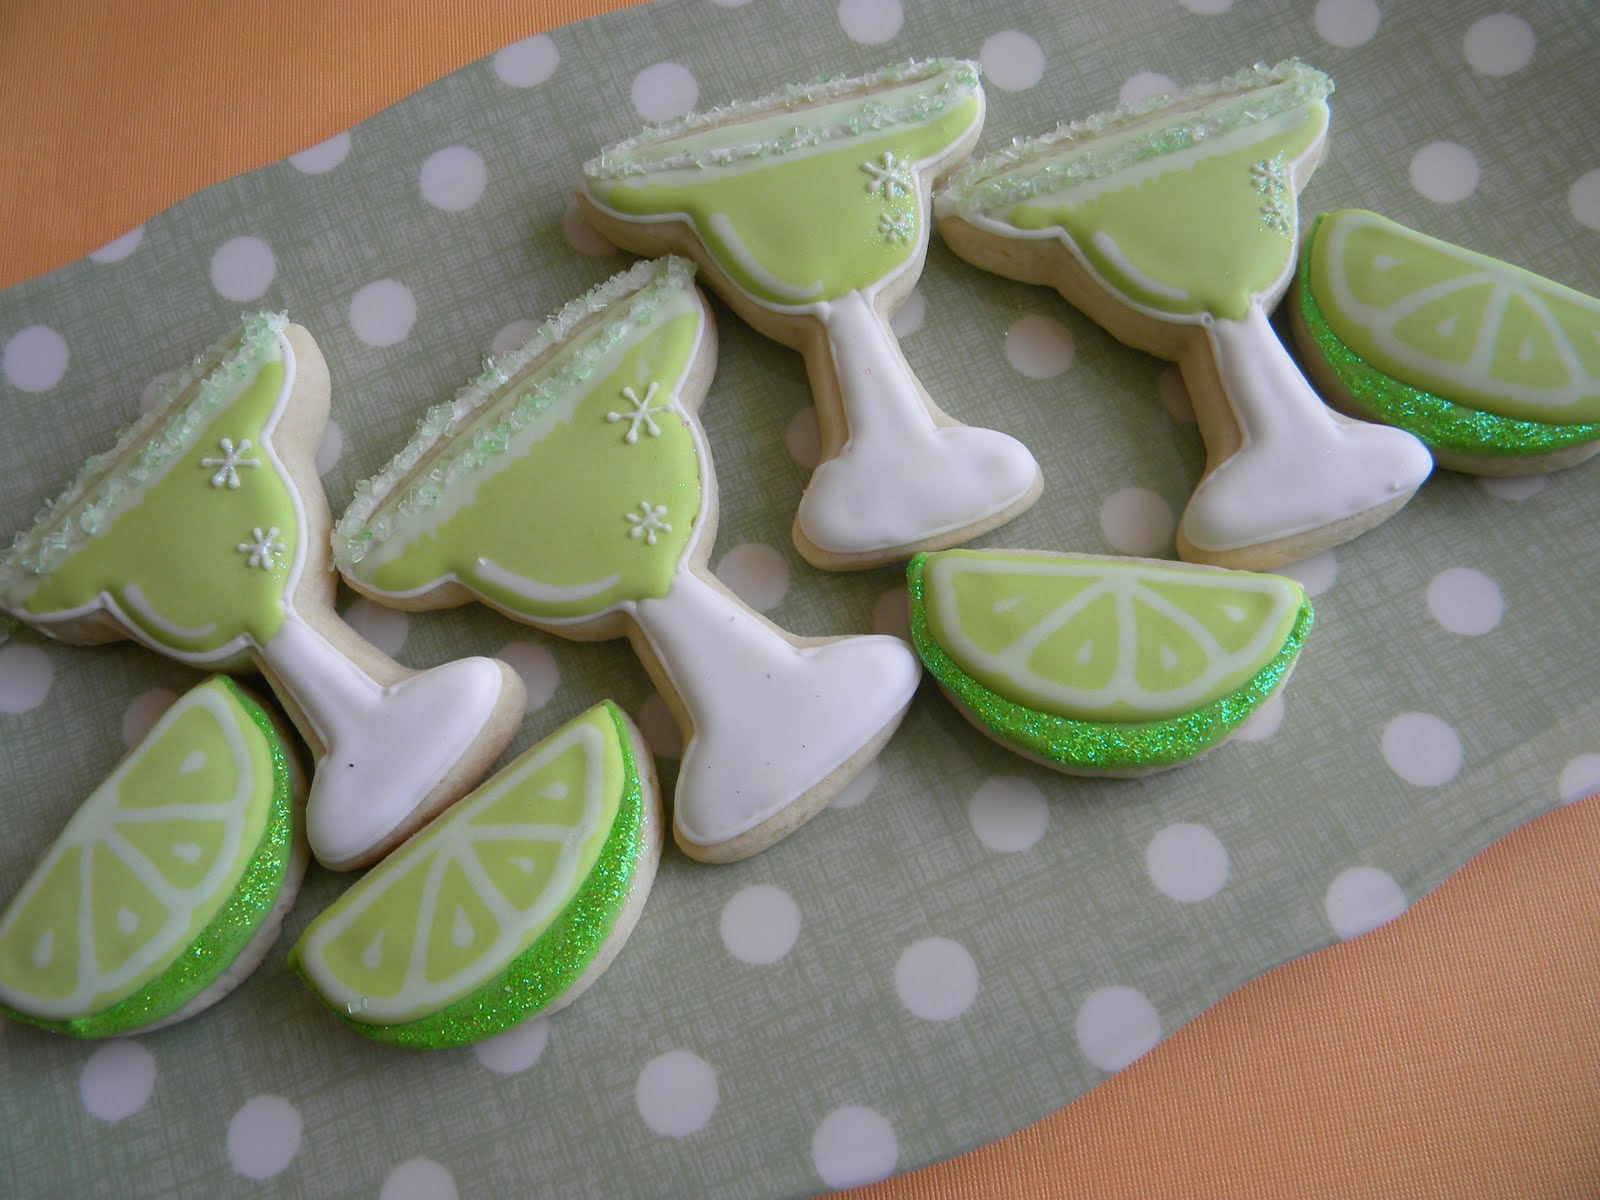 Occasional Cookies: Margarita Time!